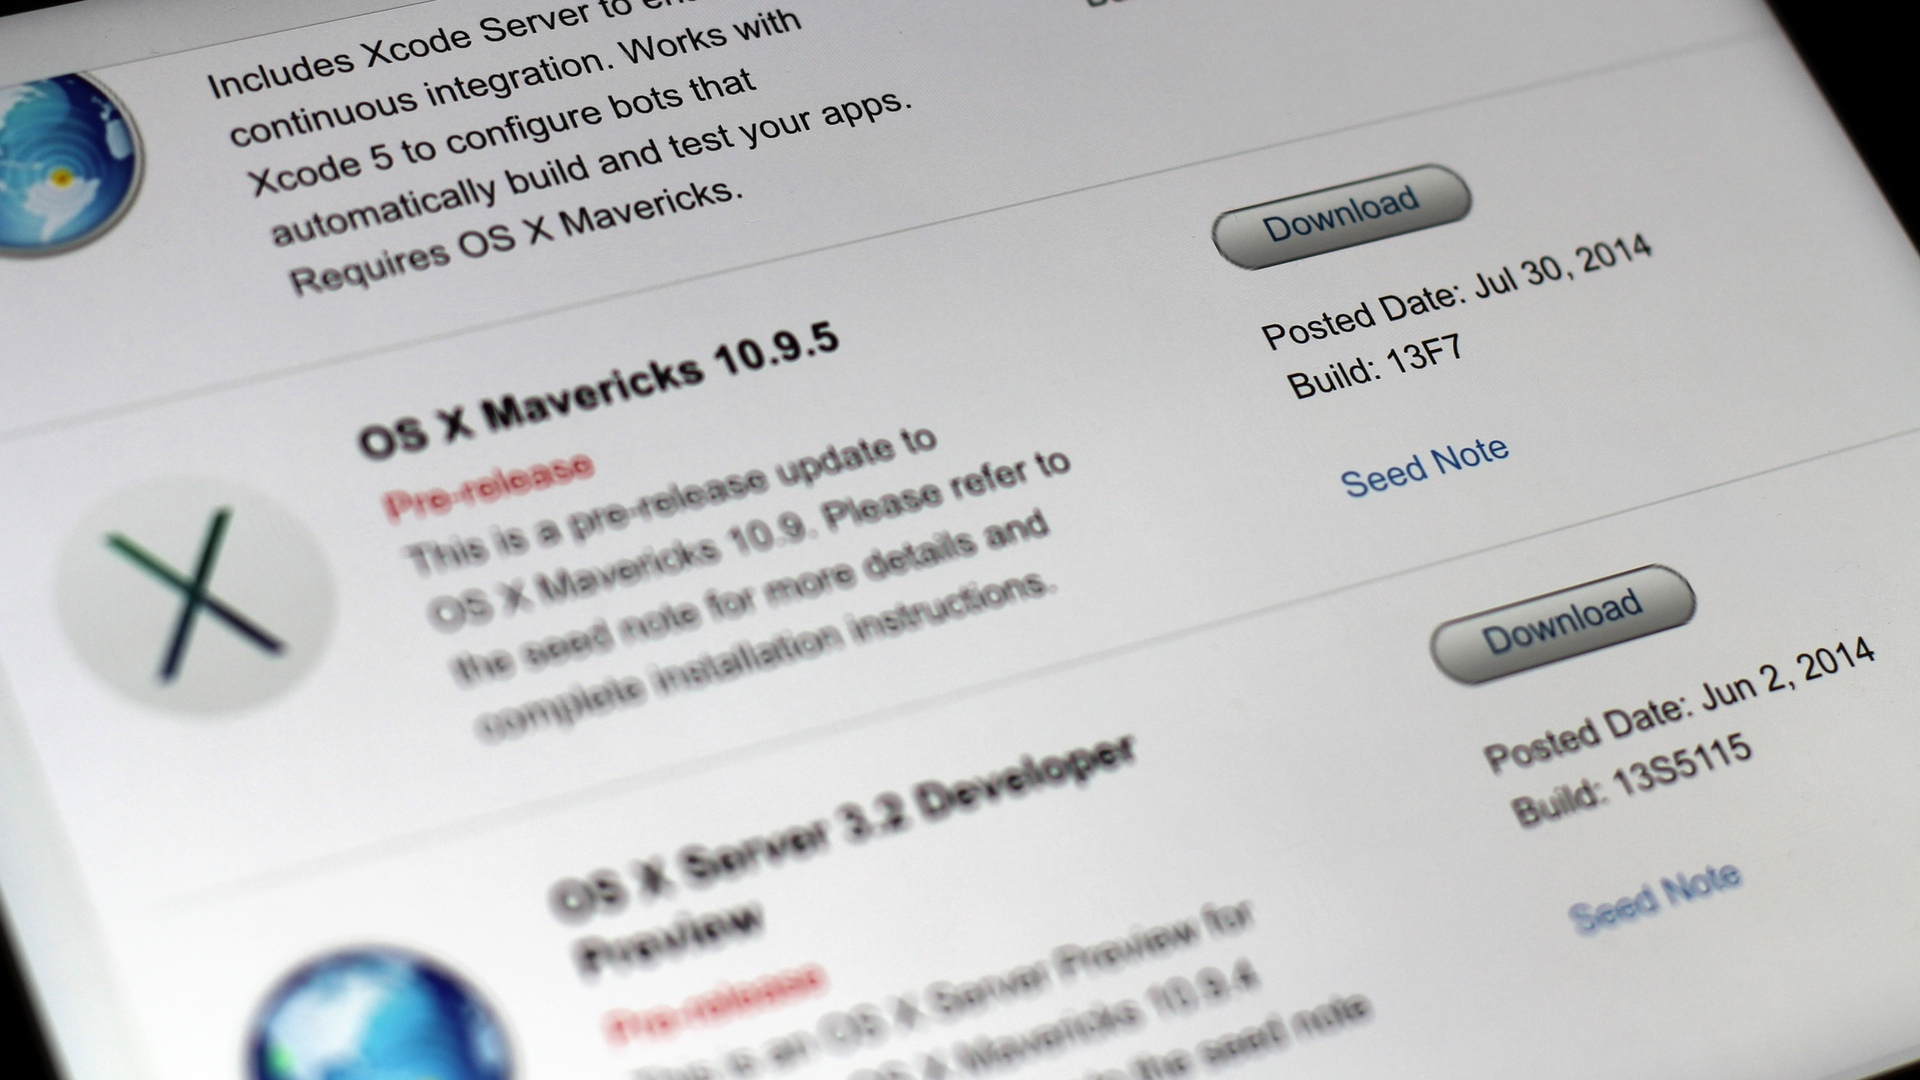 OS X Update Seed 10.9.5 build 13F7